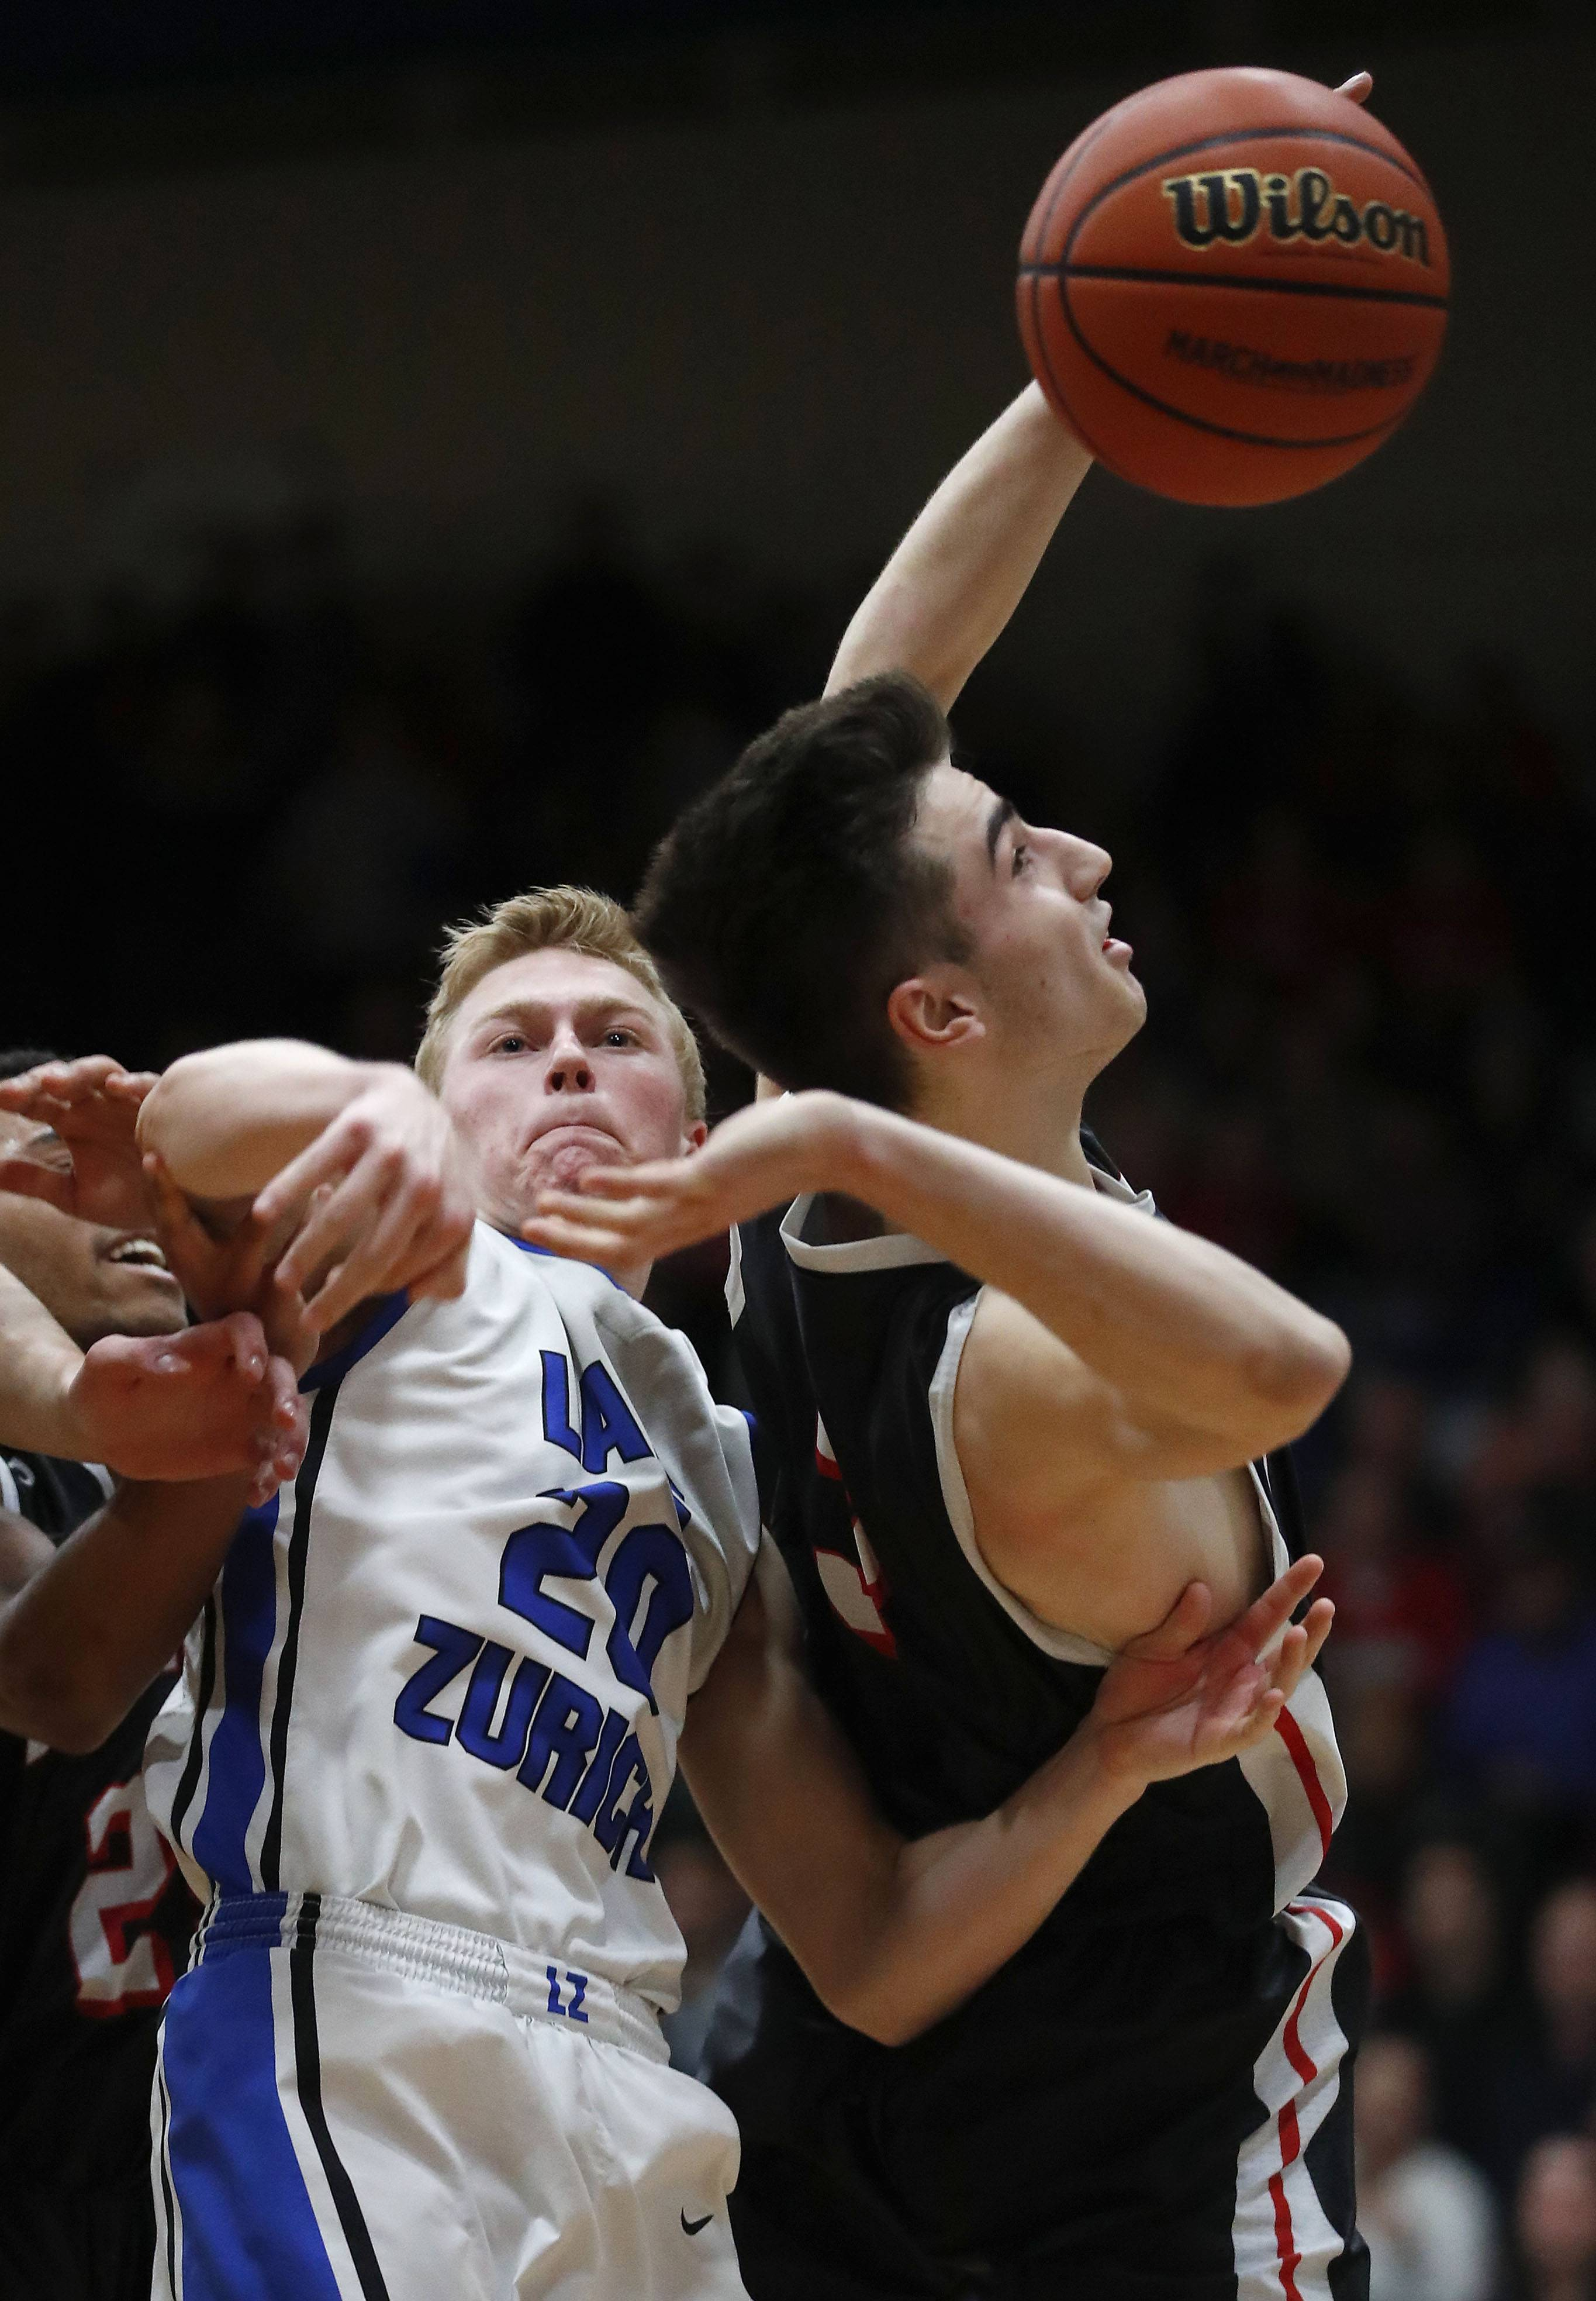 Lake Zurich's Joe Heffernan, left, and Barrington's Mark Johnson battle for a rebound during the Class 4A sectional final at Lake Zurich on Friday.